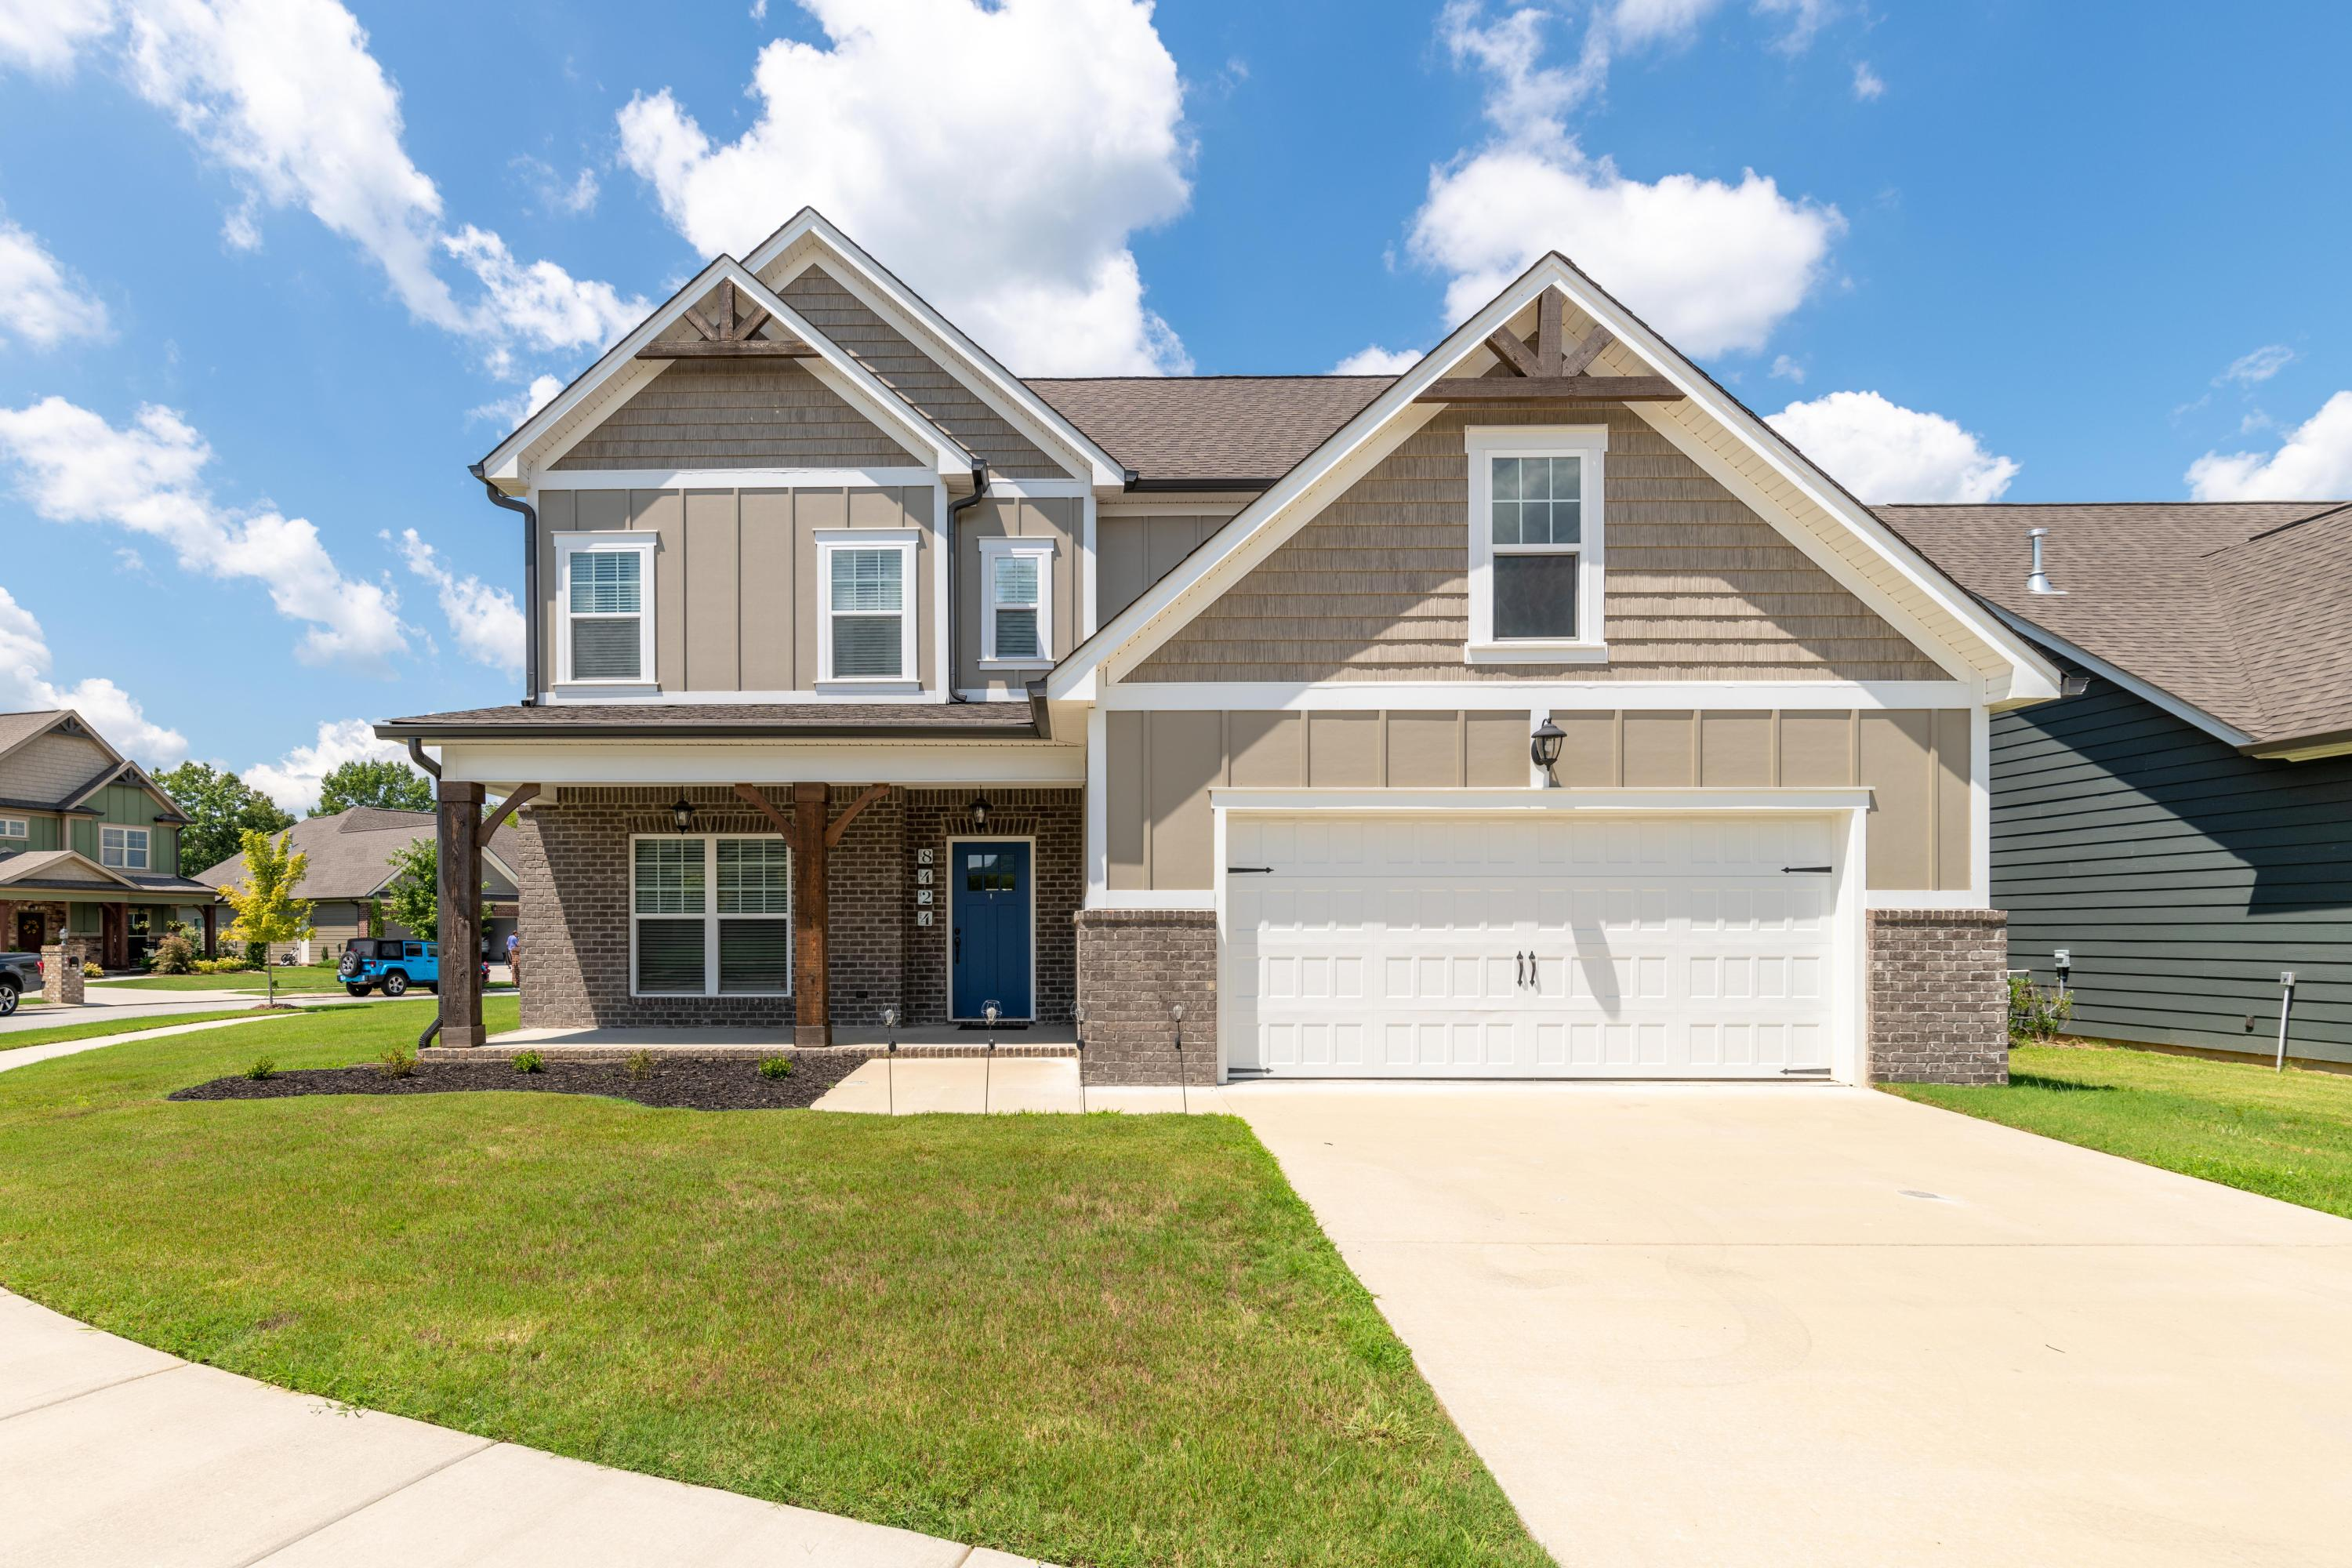 Details for 8424 River Birch, Ooltewah, TN 37363